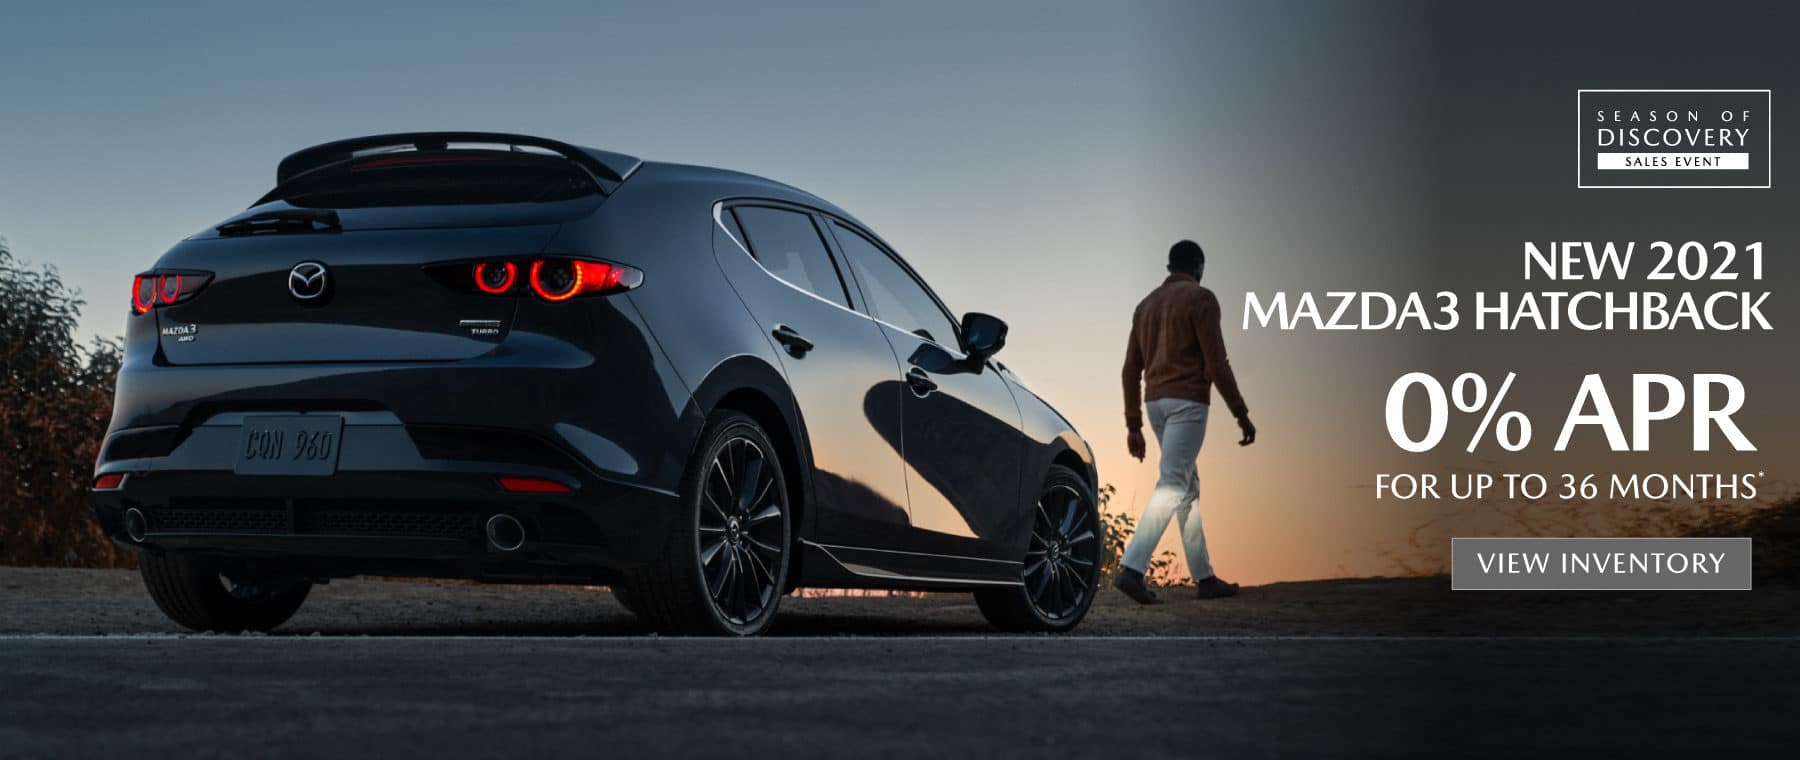 2021 Mazda3 Hatchback   0% APR for up to 36 months   View Inventory